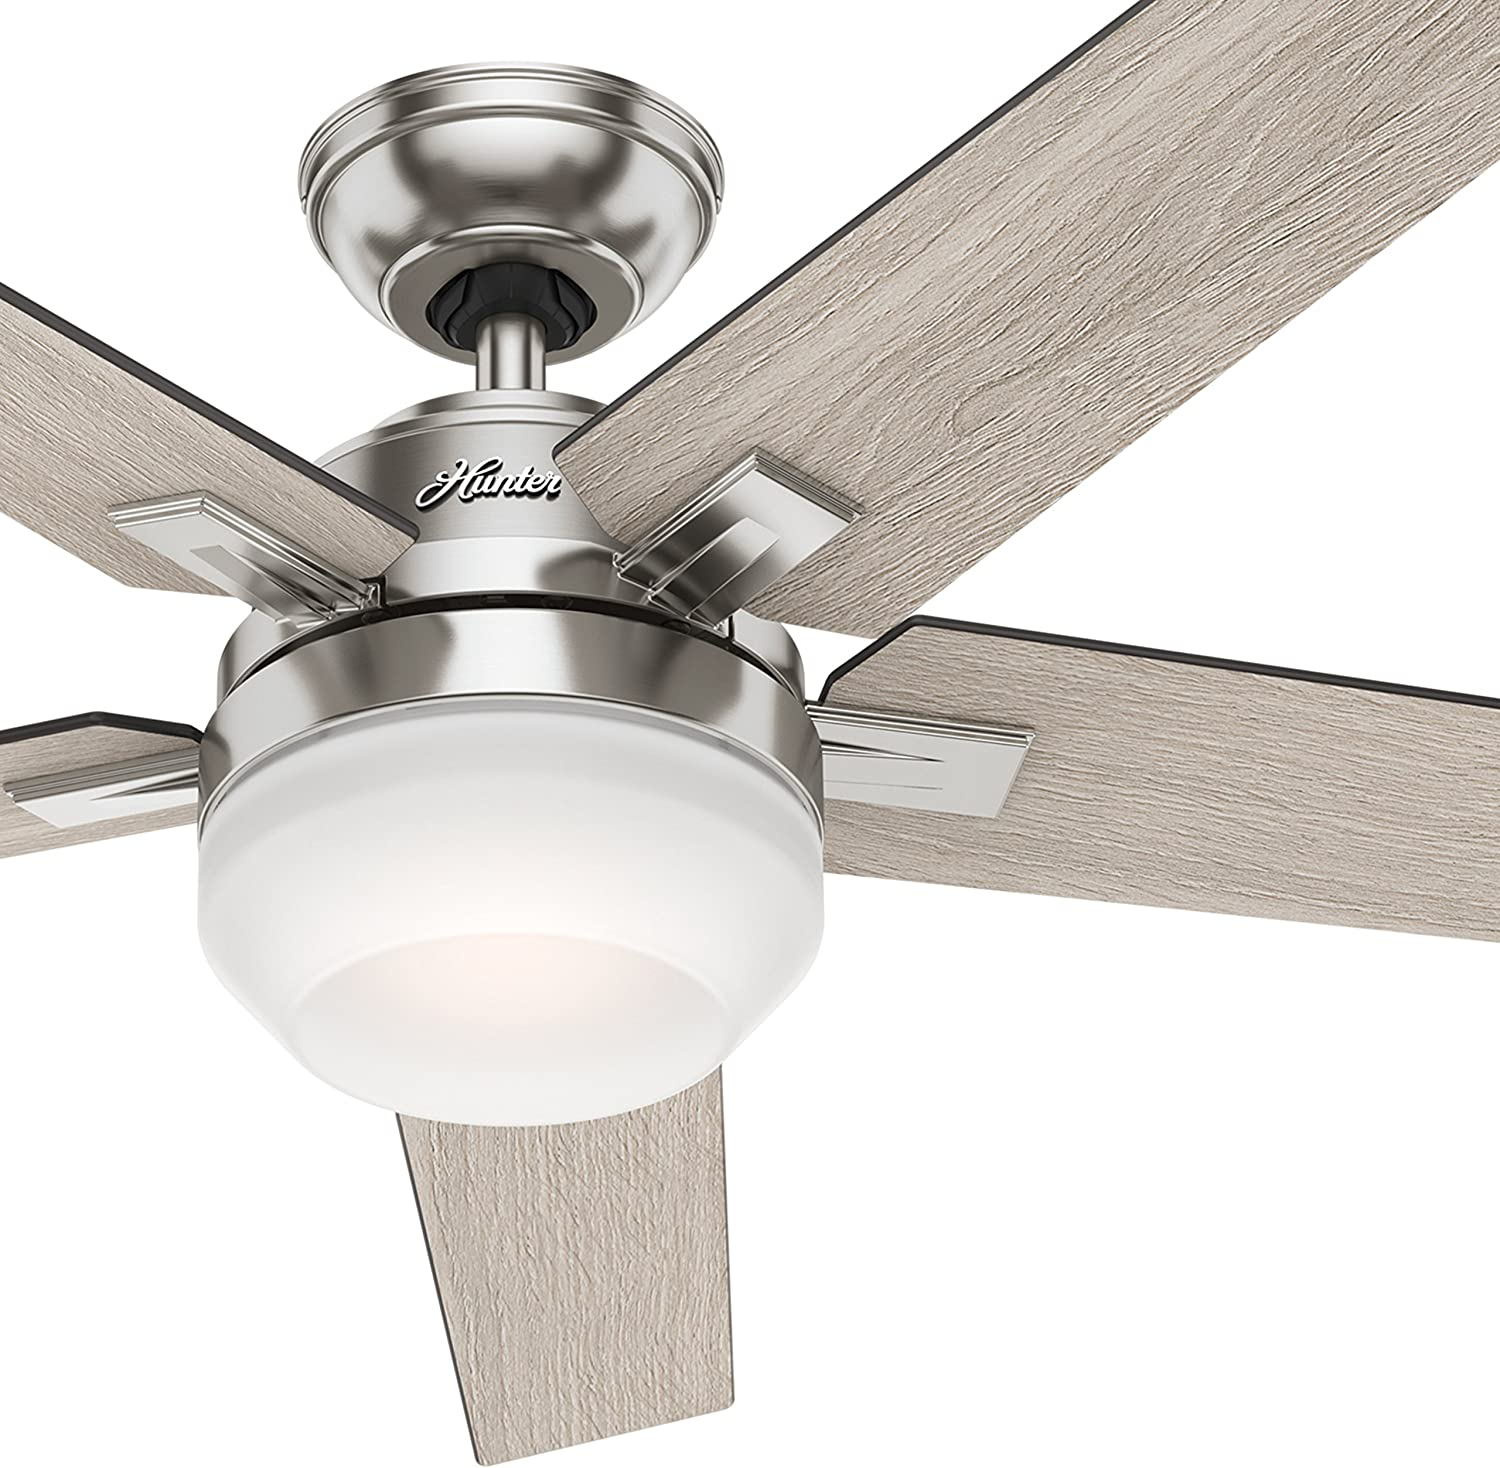 Hunter 54 Contemporary Indoor Ceiling Fan with Light Kit and Remote Control Renewed , Brushed Nickel Finish